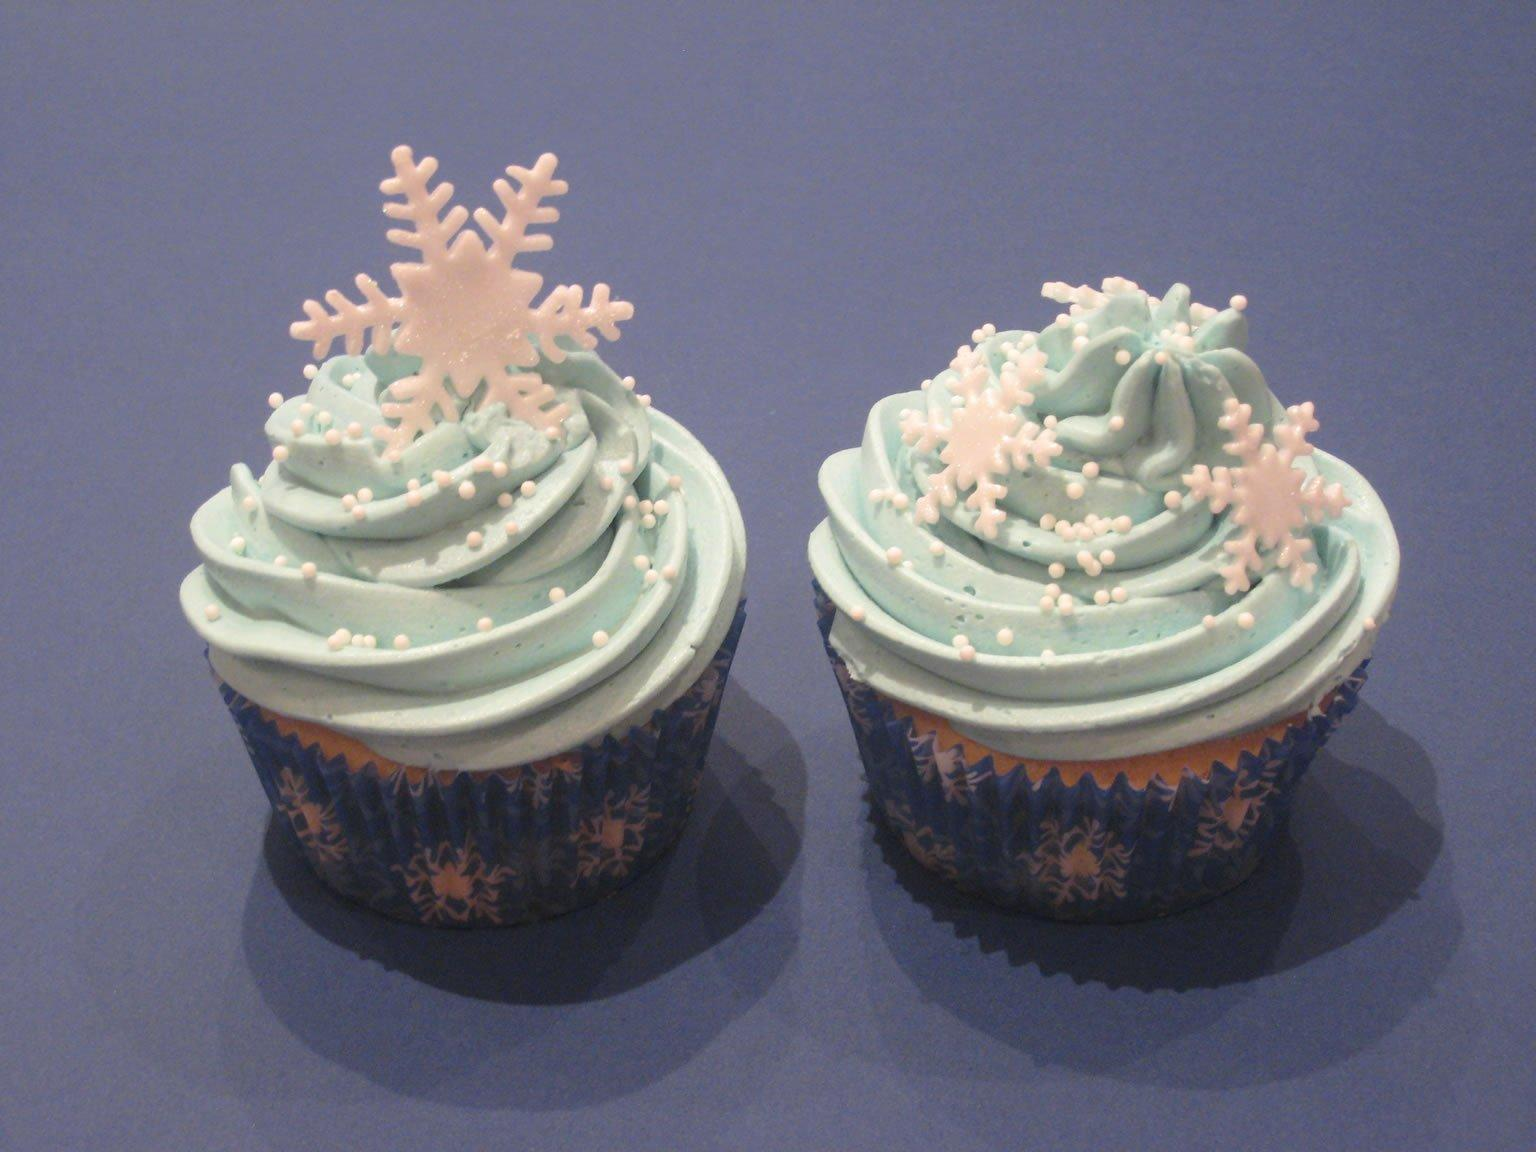 This Is How You Make Sparkly Snowflake Cupcakes Step By